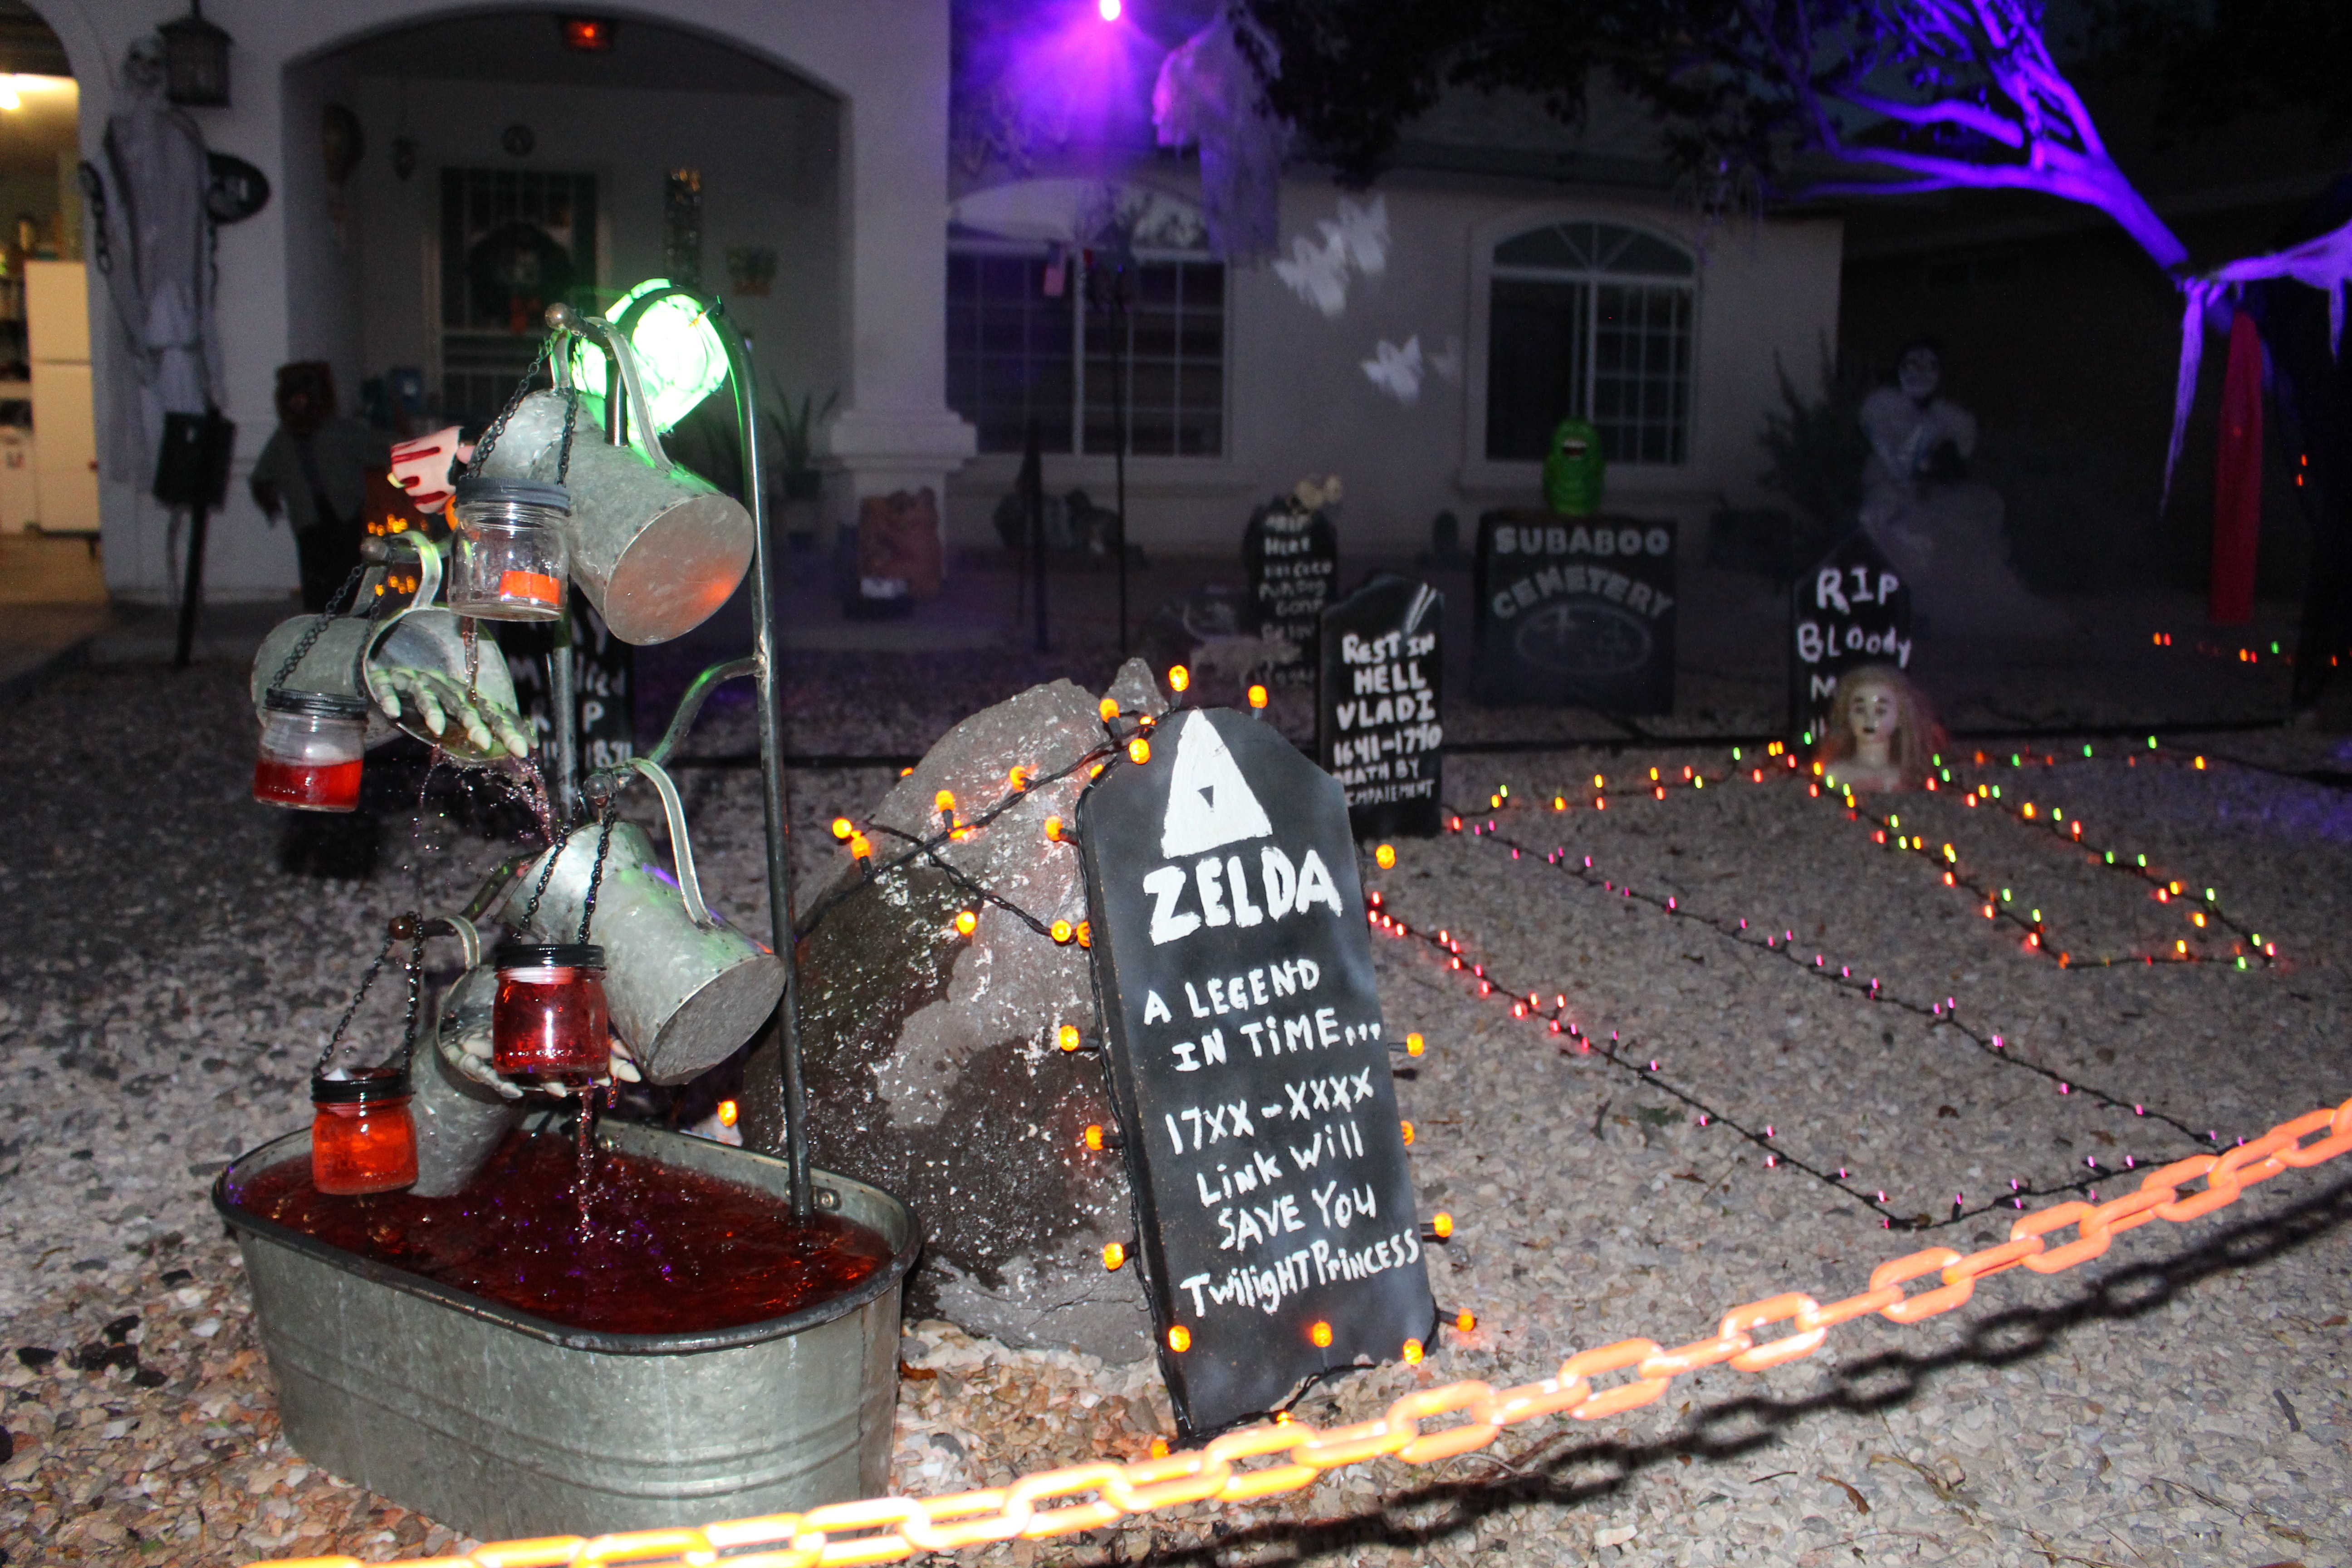 kingman families get into halloween spirit with decorated houses